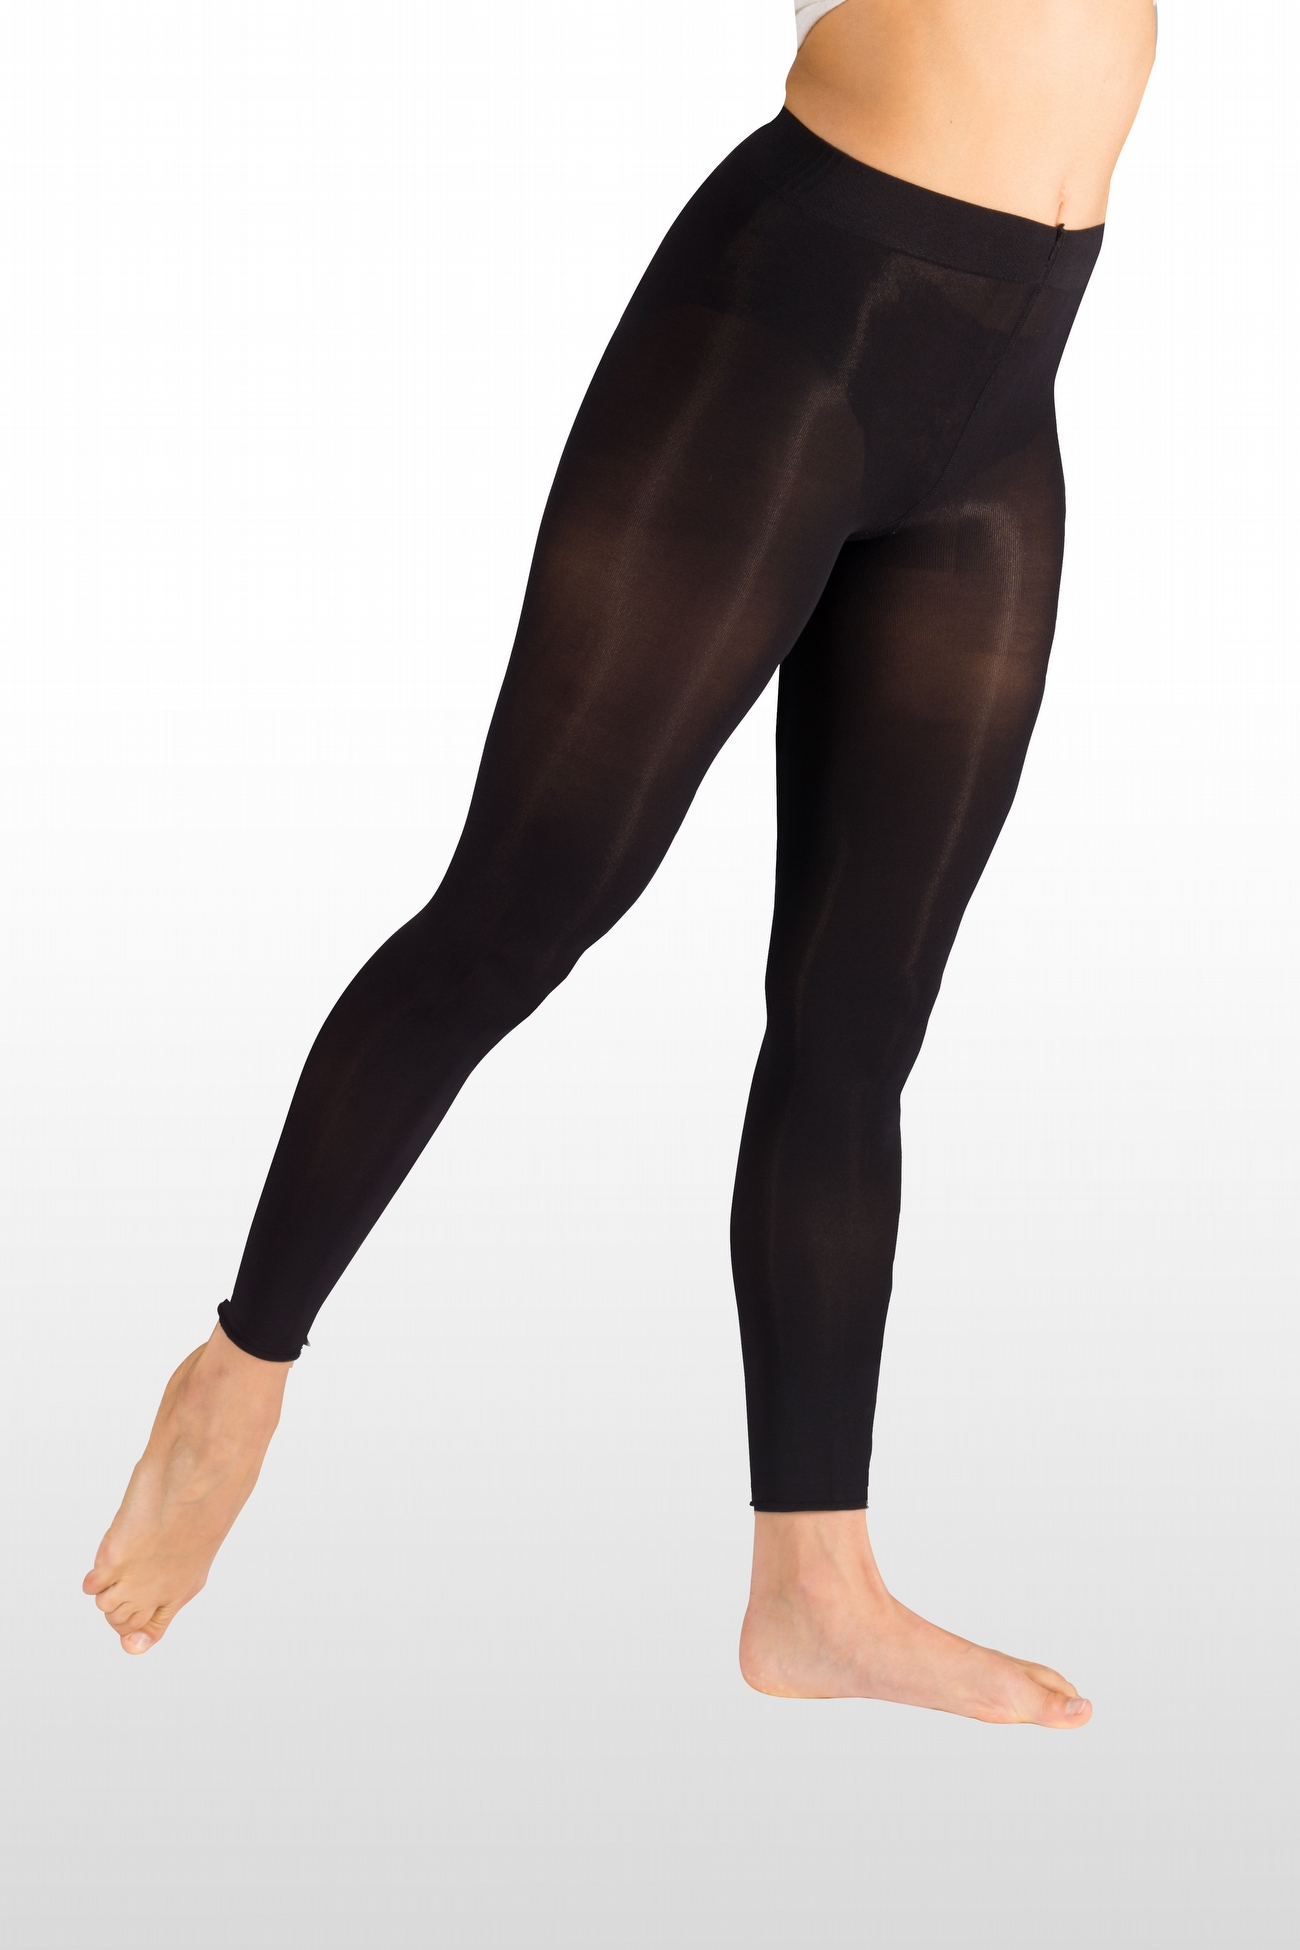 compra online Skating FOOTLESS TIGHTS 50 DEN